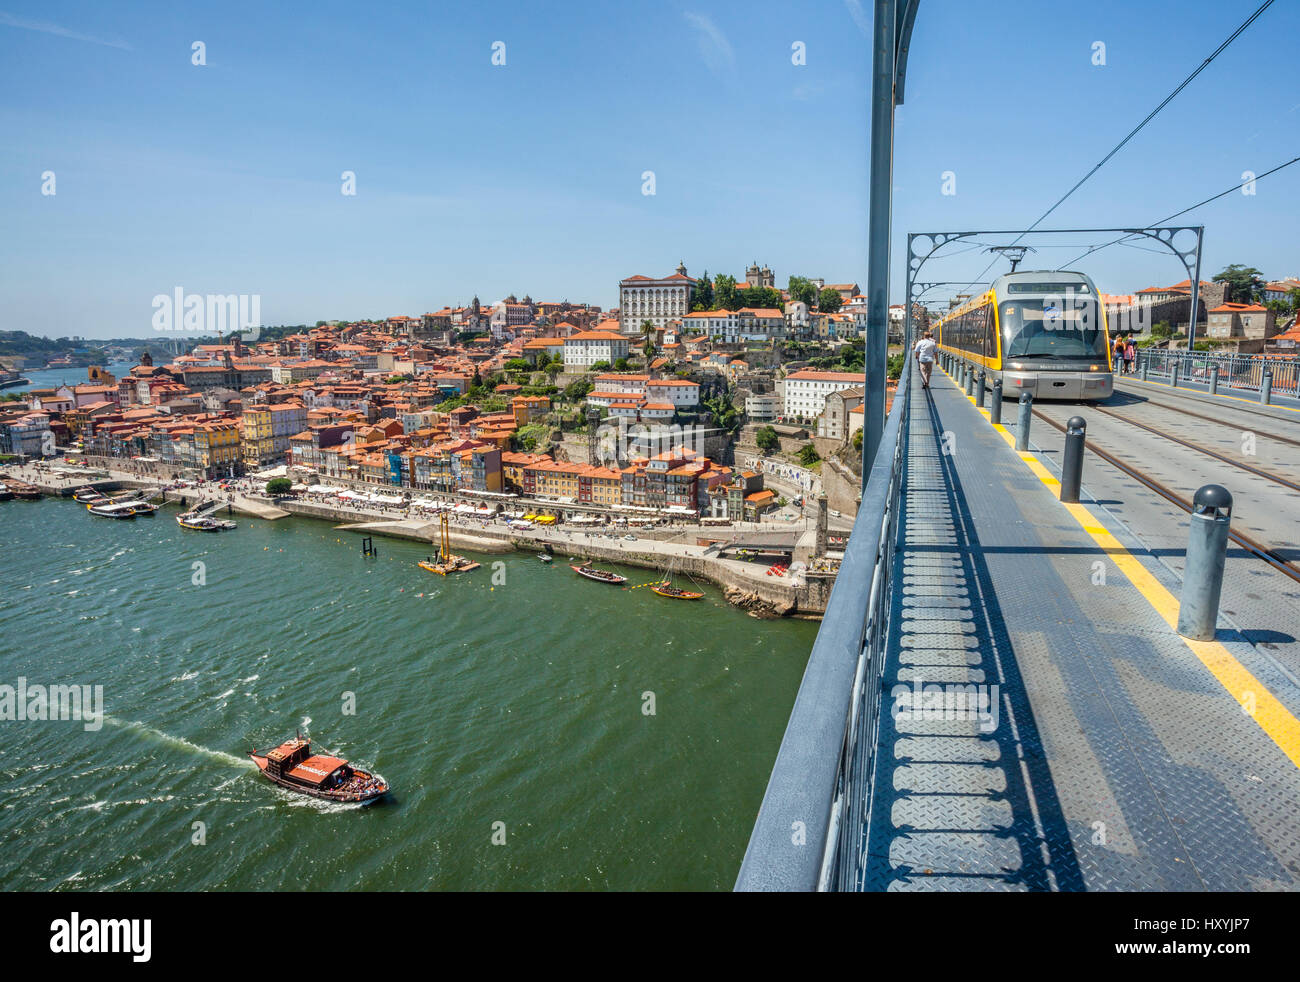 Portugal, Region Norte, Porto, view of the Douro River and the Ribeira riverfront from Dom Luís I Bridge - Stock Image